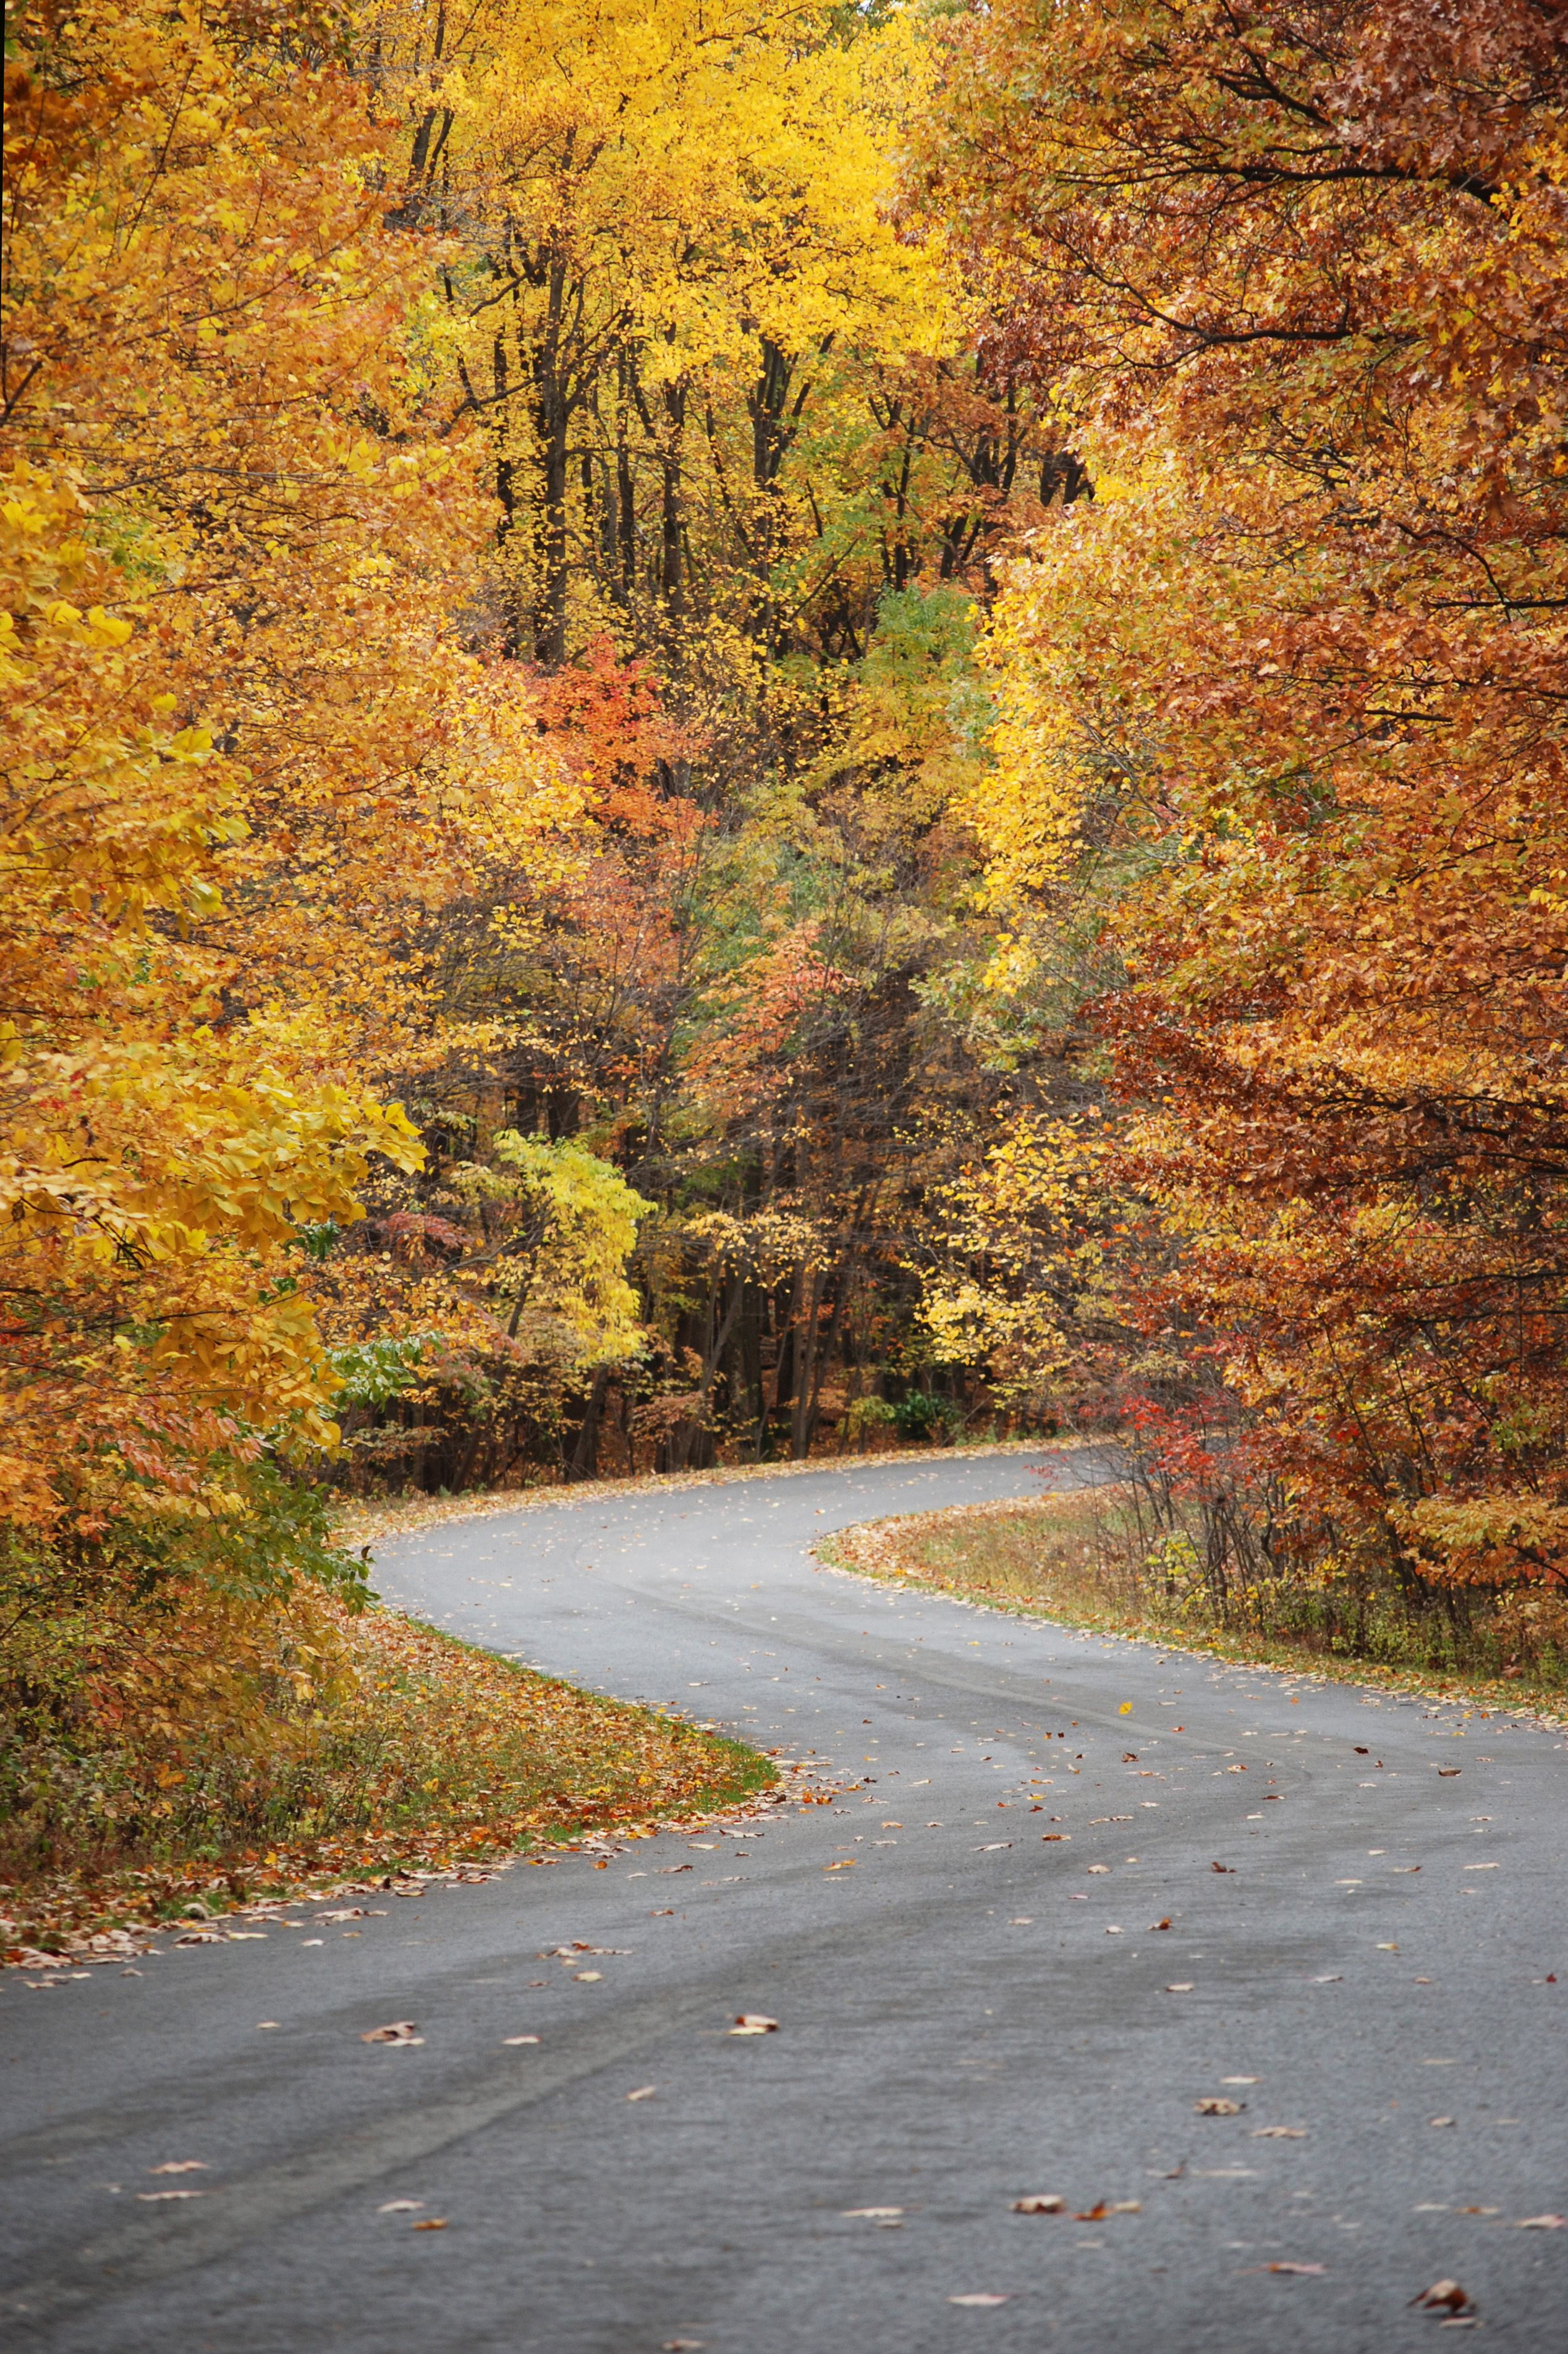 Pin By Nelda Kelough On Road Trips Morgantown West Virginia Country Roads Take Me Home State Parks